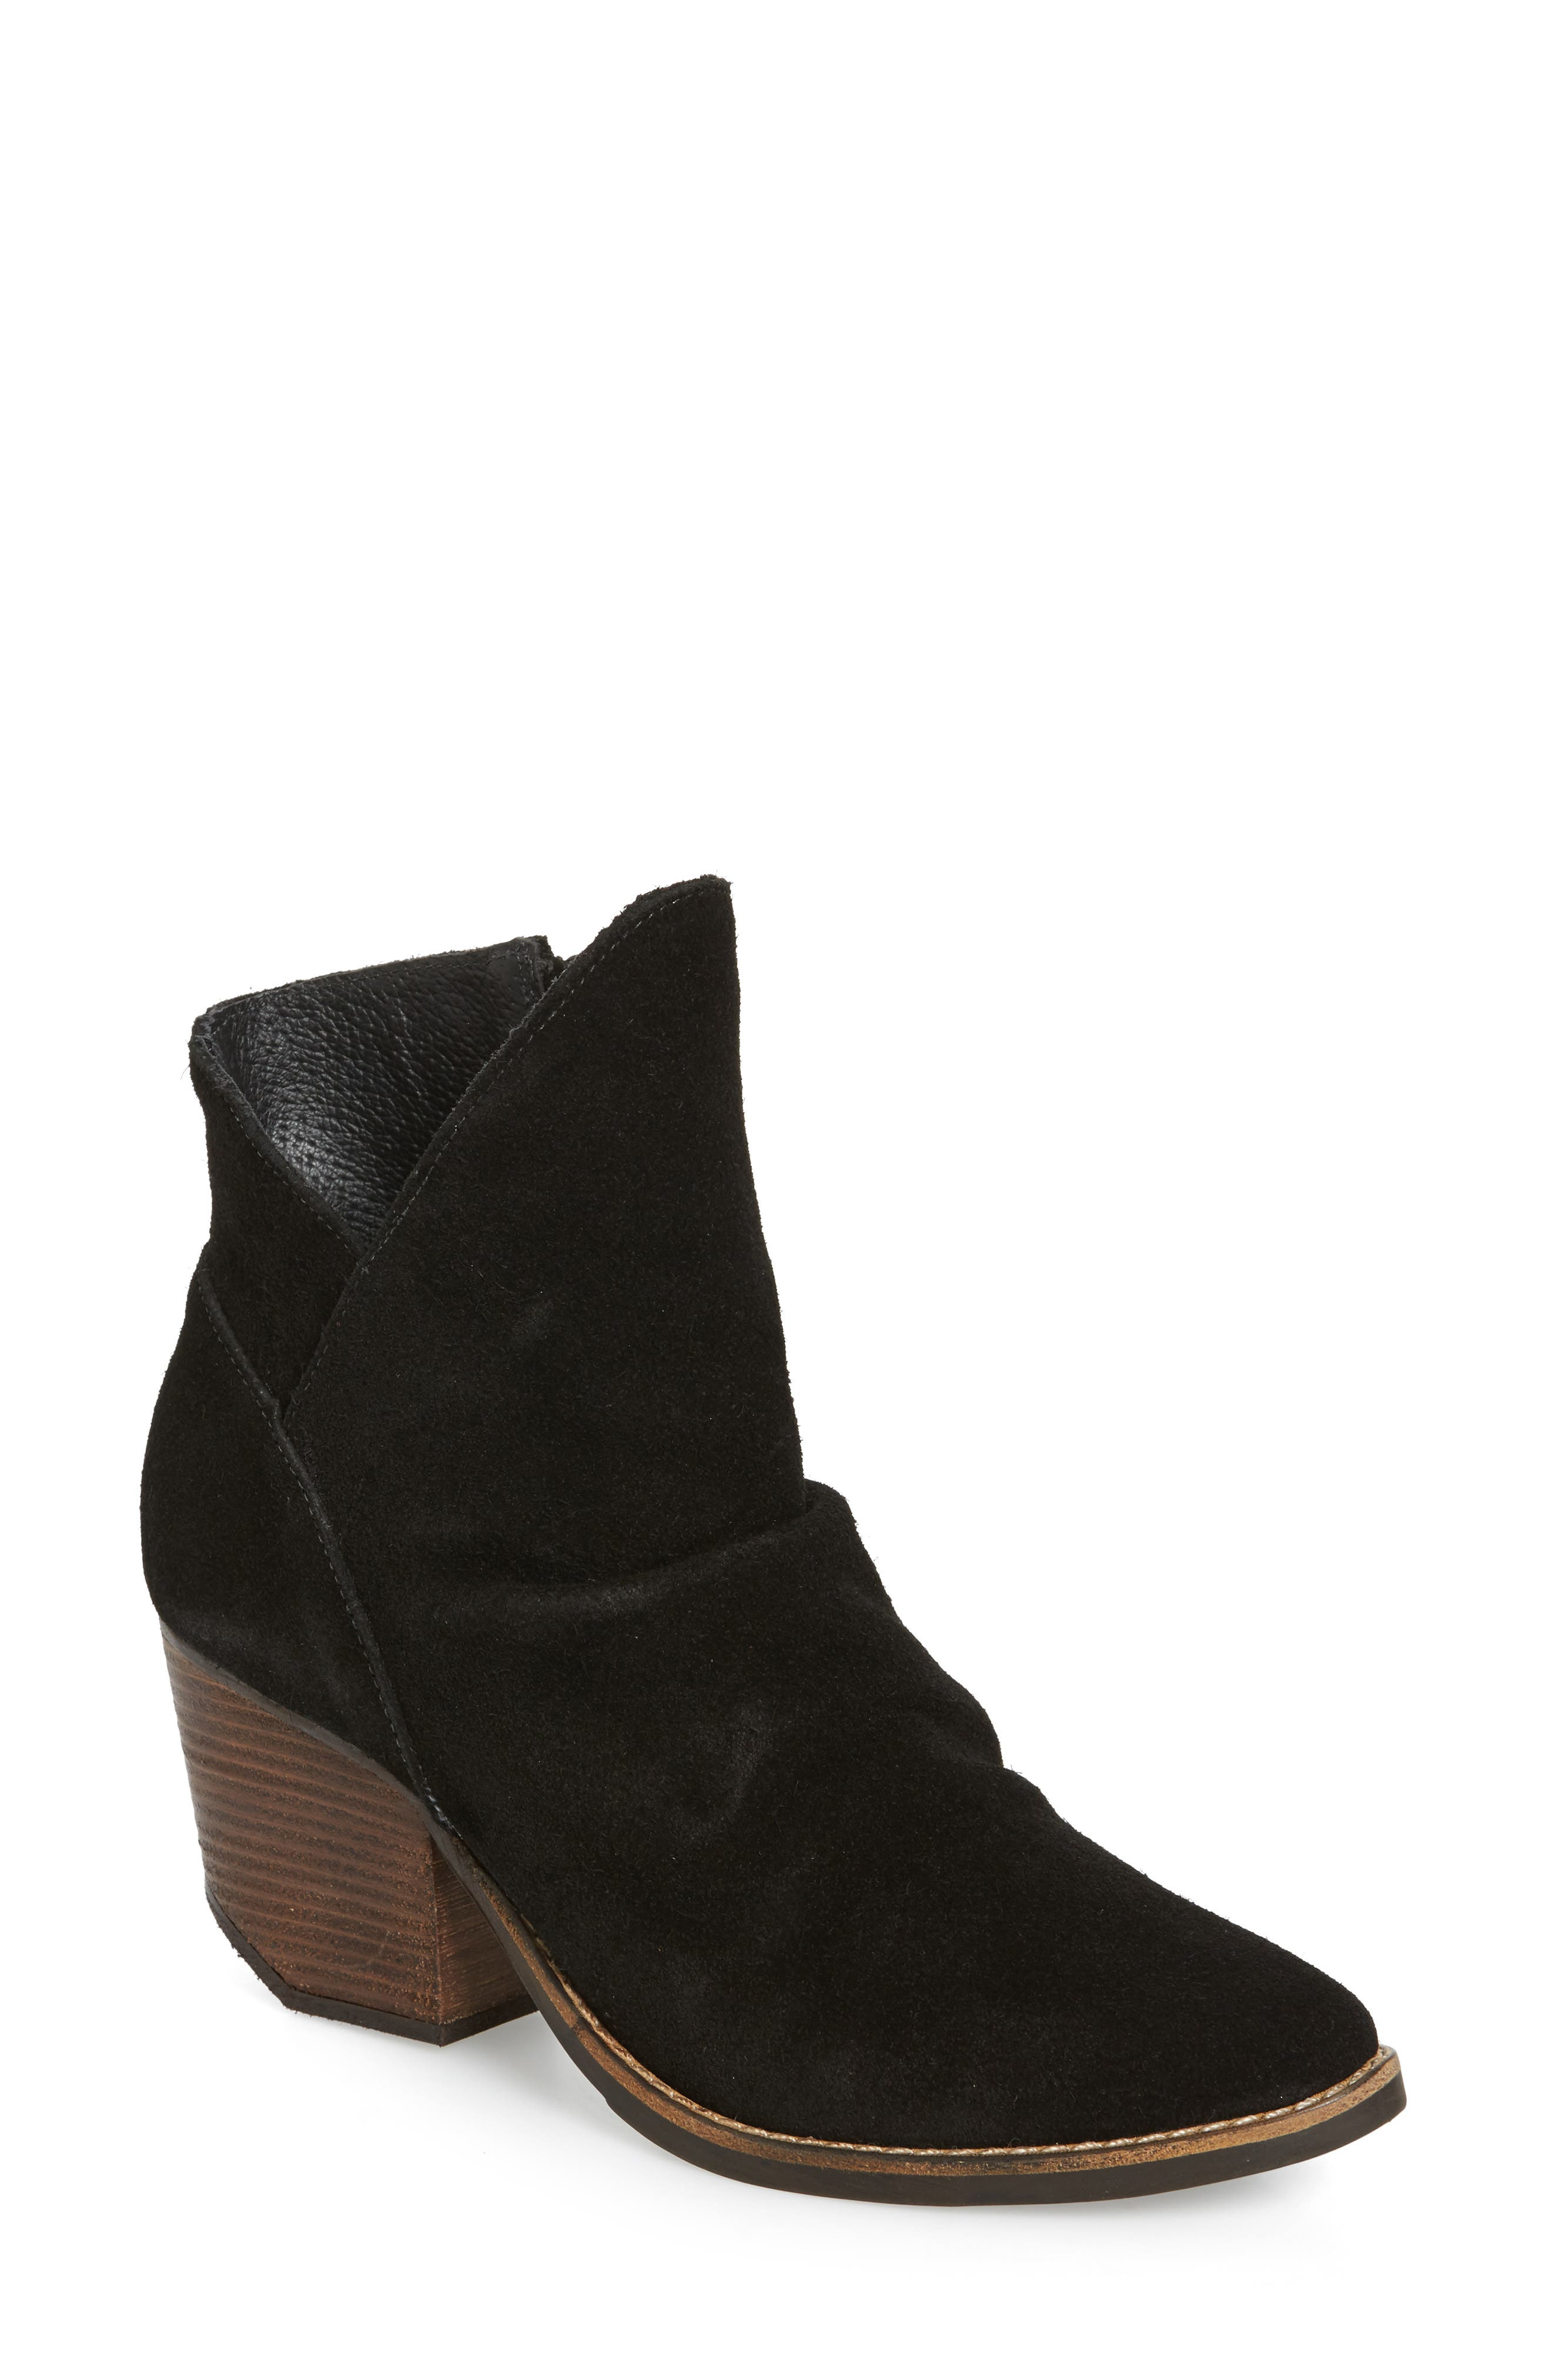 Society Bootie,                         Main,                         color, 017